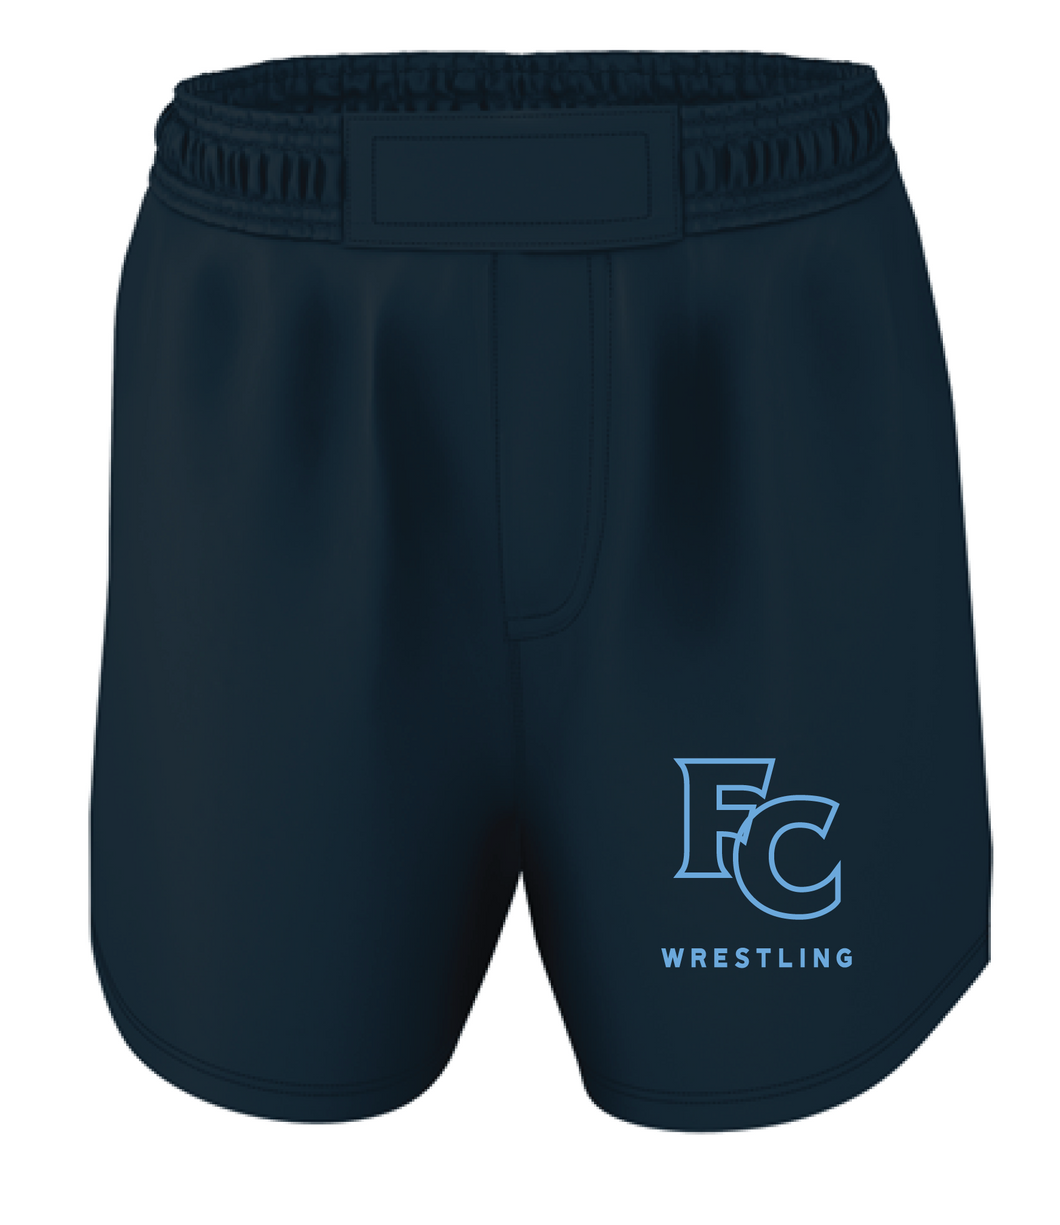 Wrestling Shorts (Youth & Adult) / Navy / FC Wrestling